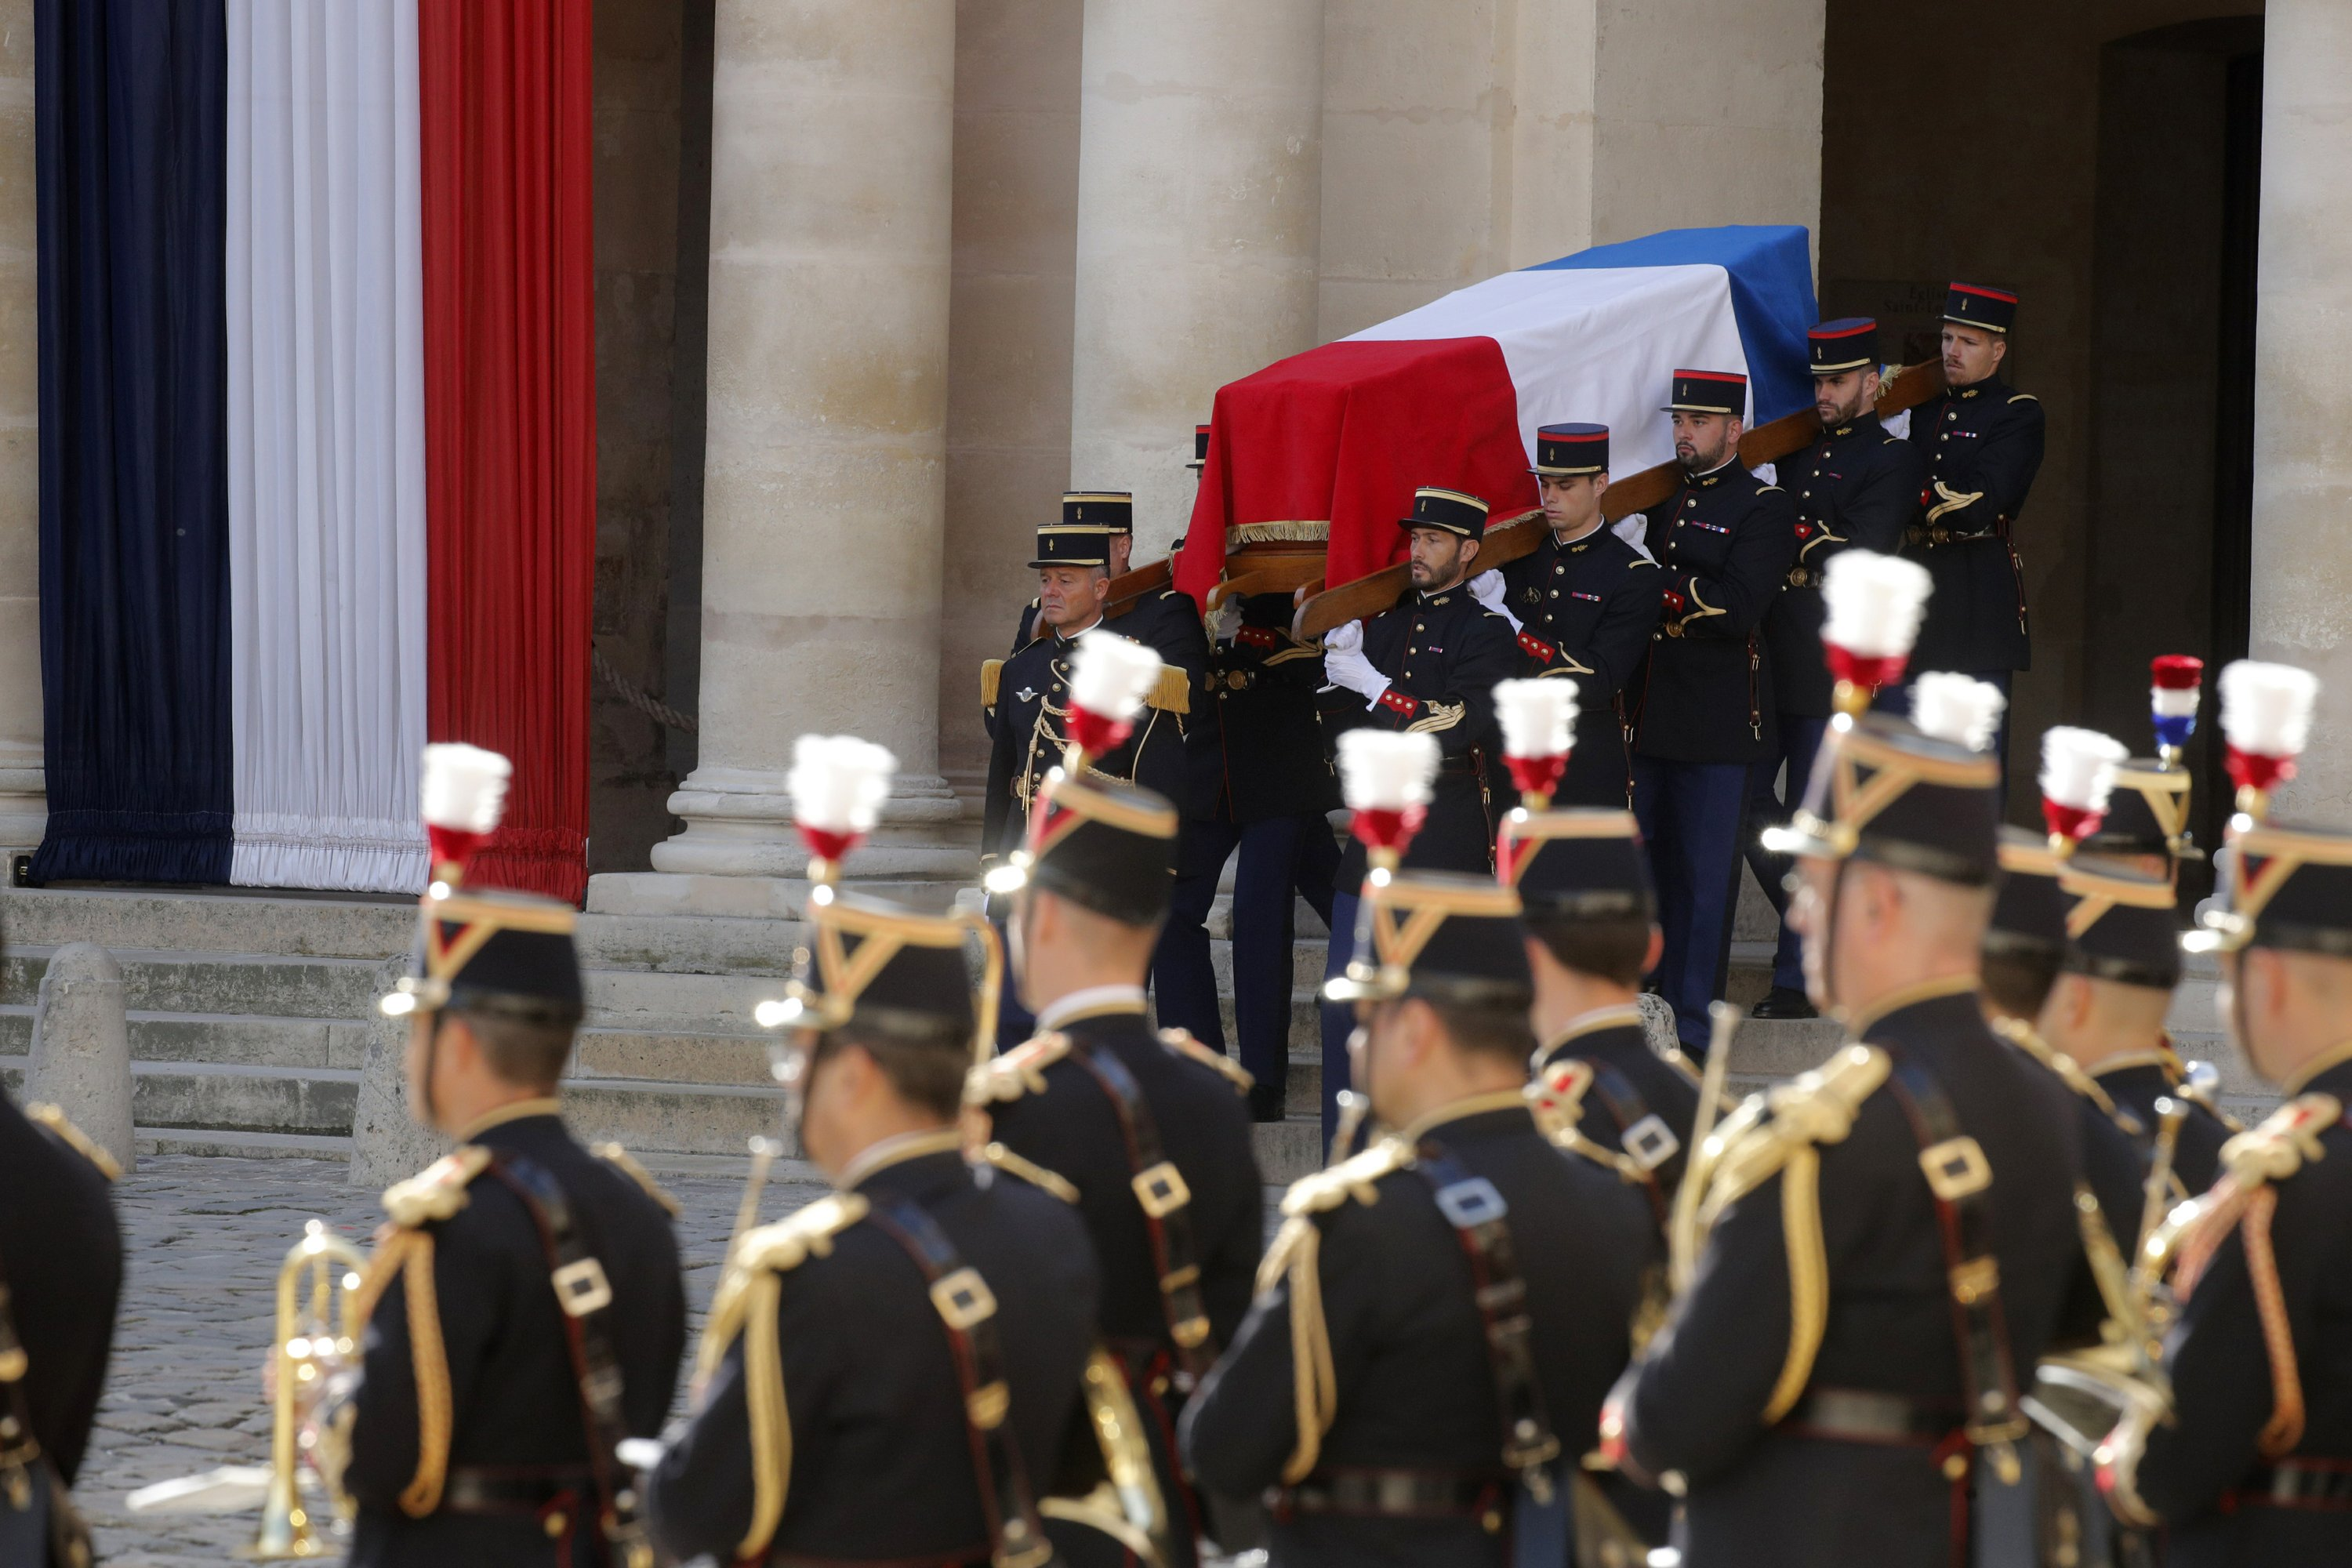 Chirac gets full military honors as France bids him farewell